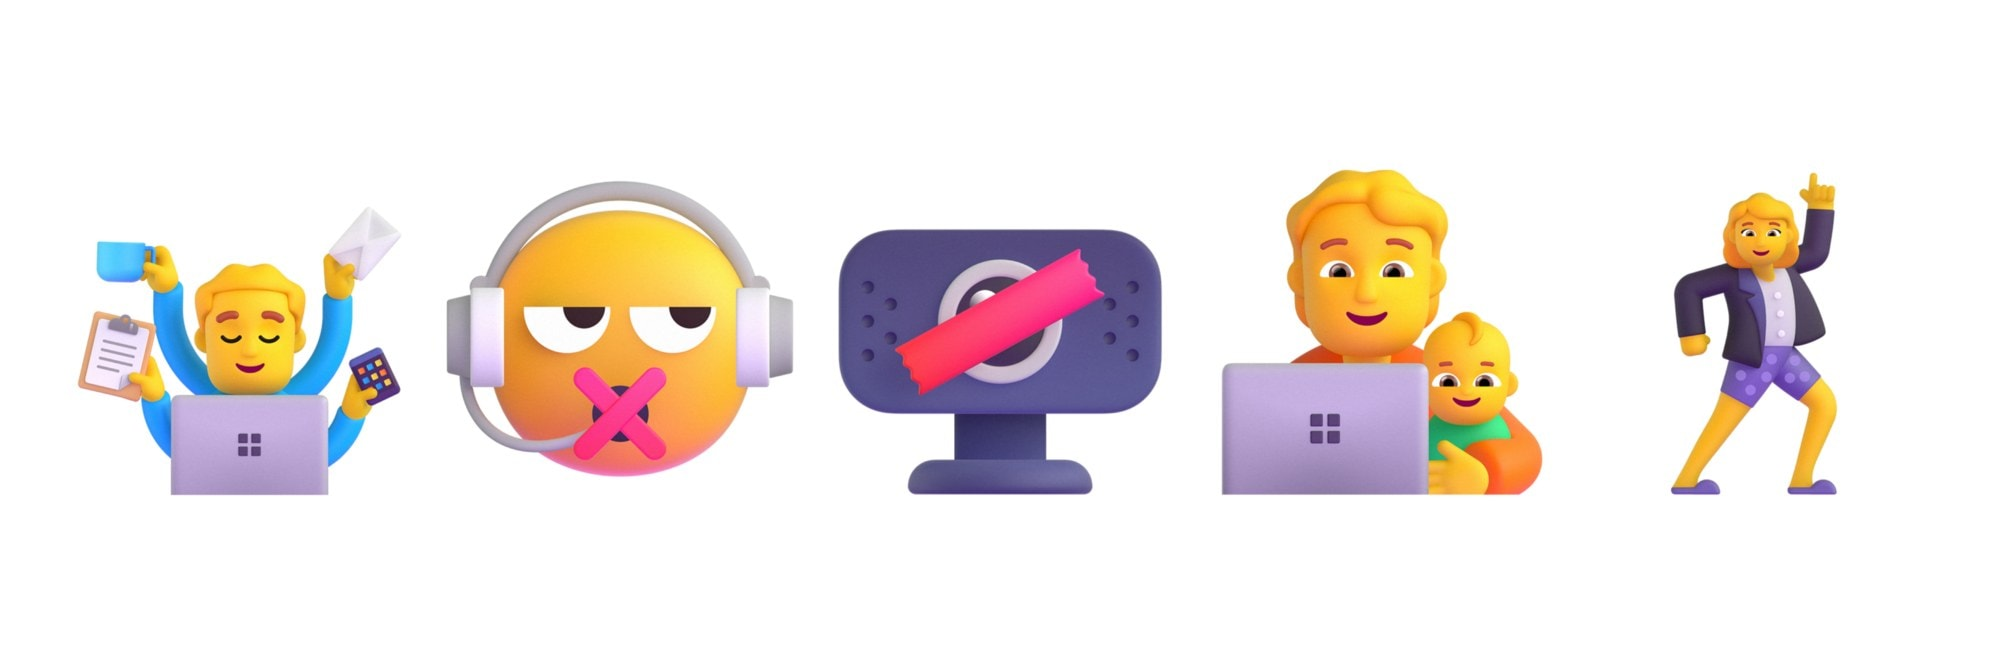 Concept design for emoticons suitable for the workplace.  Image: Microsoft